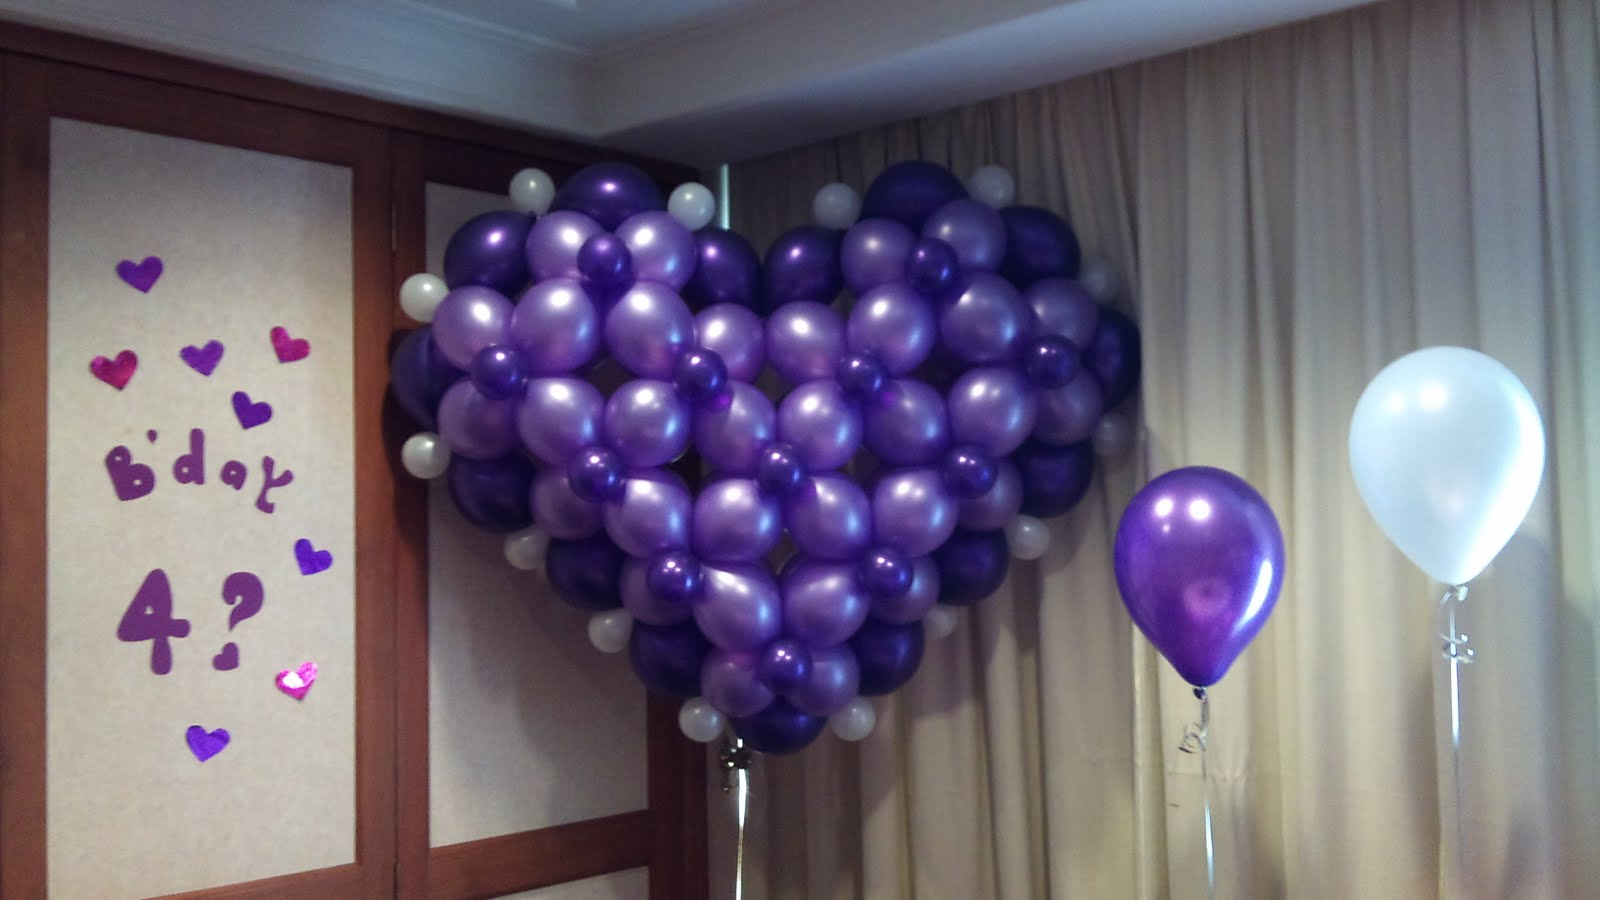 Balloon decorations for weddings, birthday parties, balloon sculptures ...